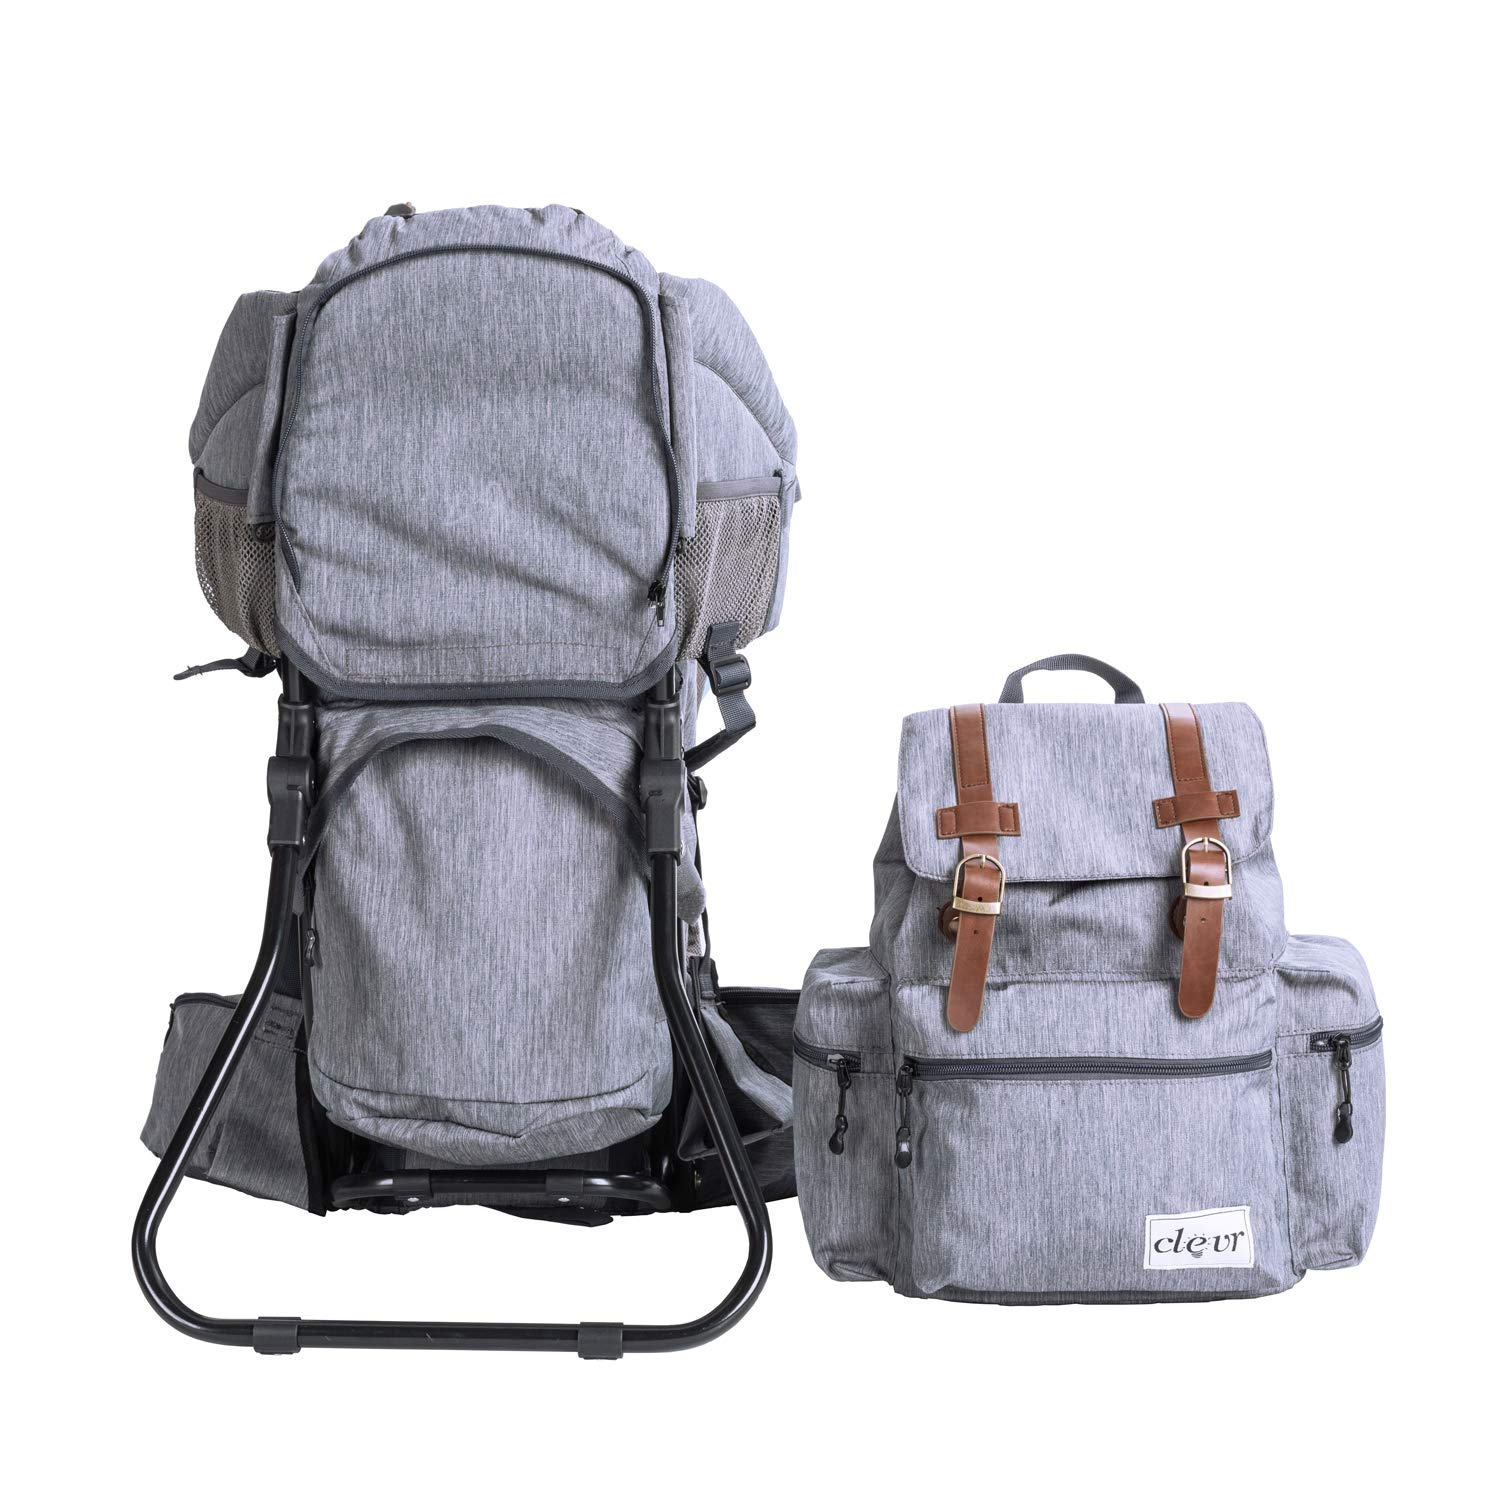 dec9f58d390 Amazon.com   Clevr Urban Explorer Hiking Baby Backpack Child Carrier ...